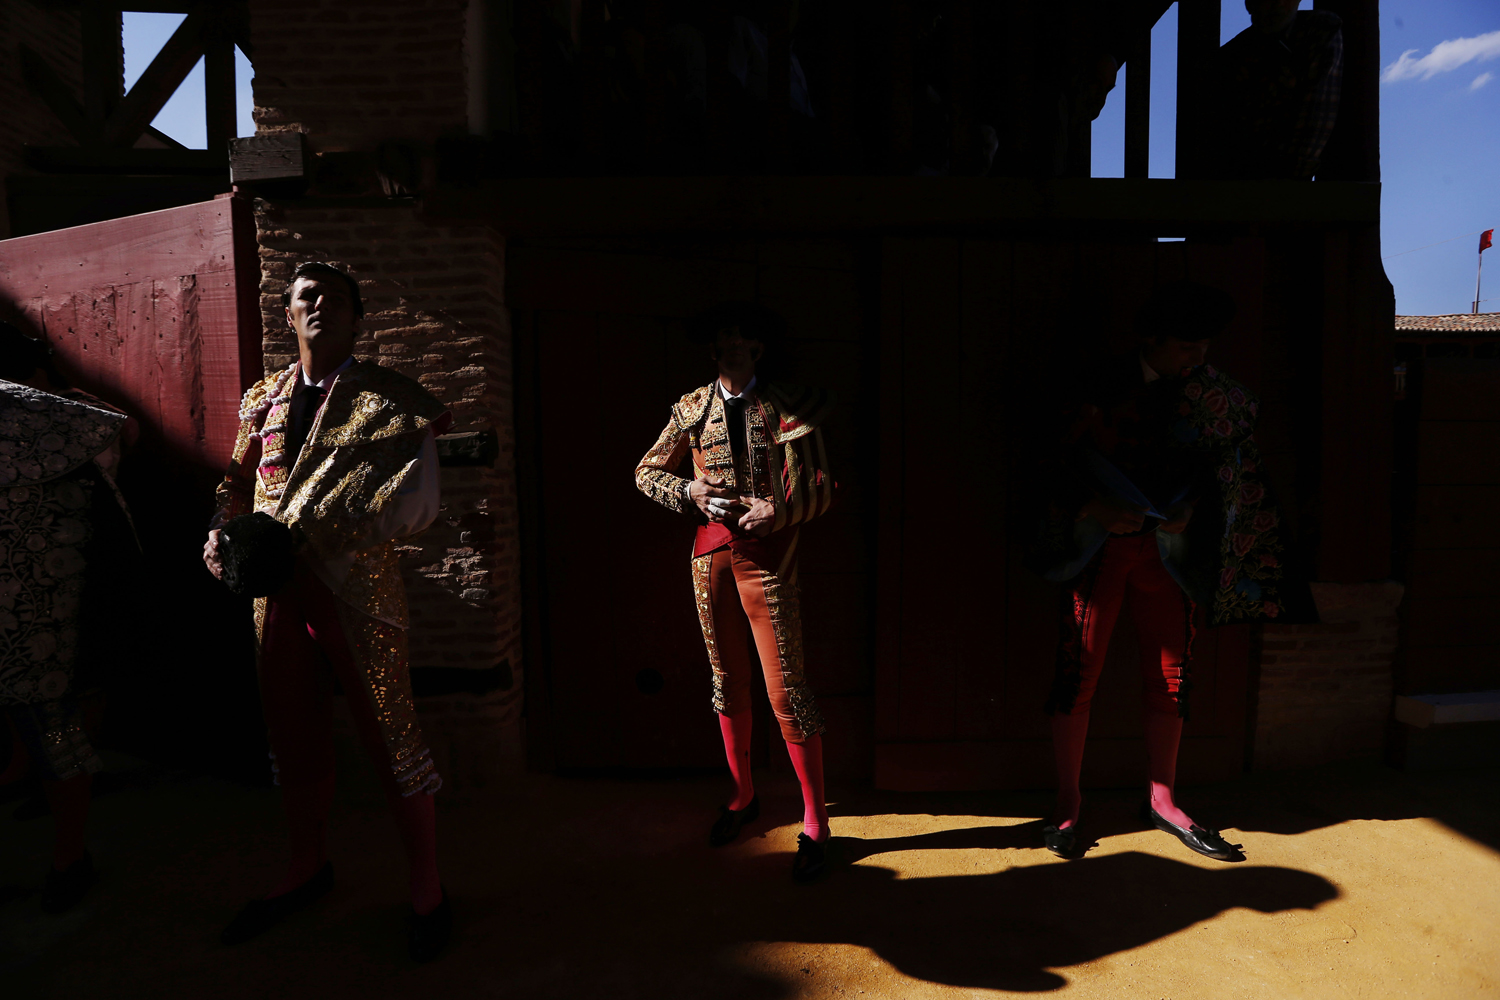 Aug. 28, 2013. Spanish bullfighter David Mora, left, and Juan Jose Padilla wait to do the paseillo or ritual entrance to the arena before a bullfight, in Toro, Spain.